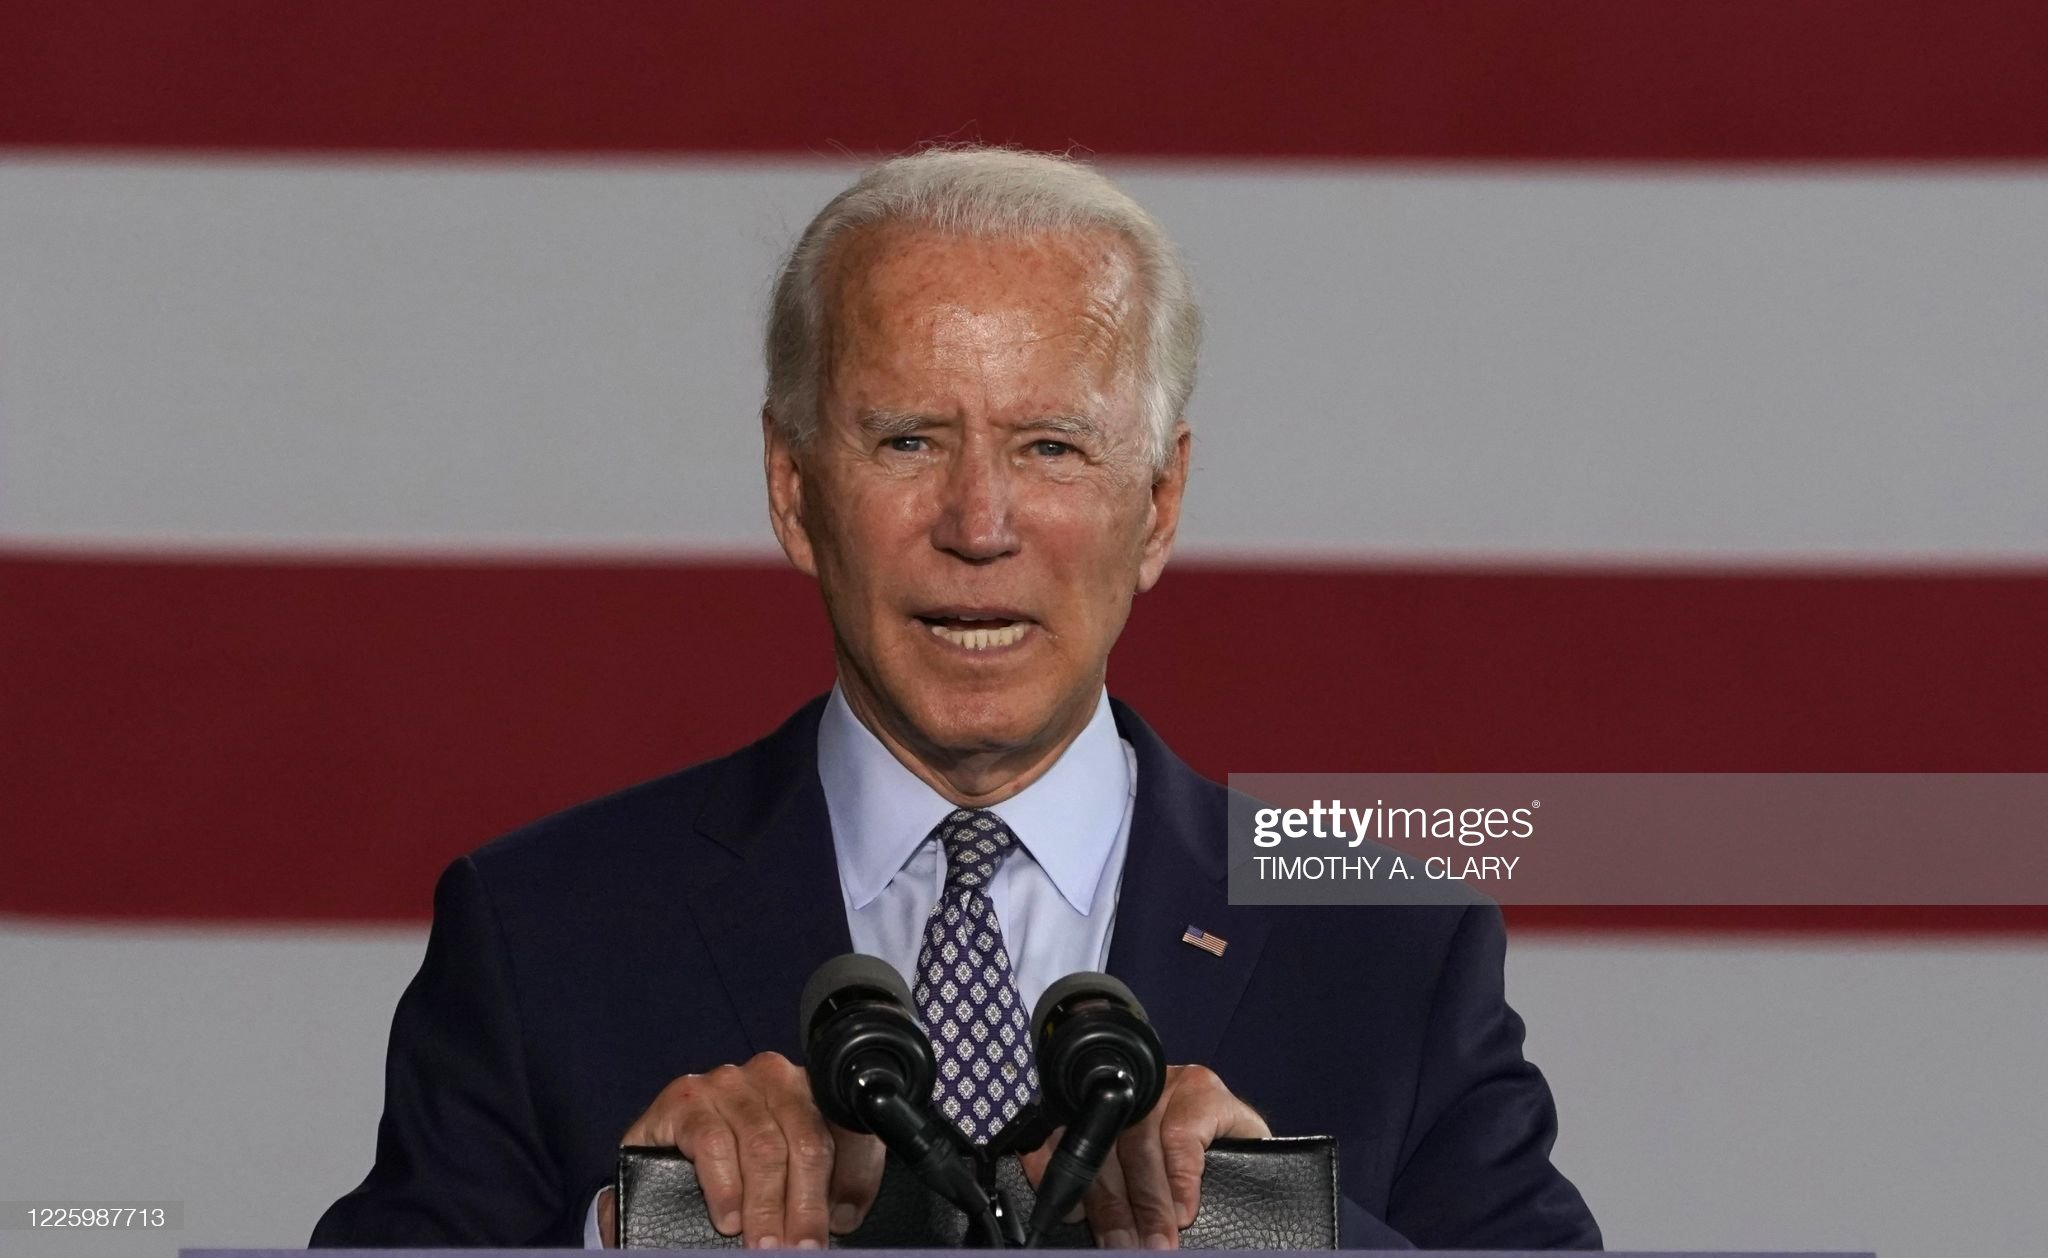 US-POLITICS-BIDEN-VOTE-INDUSTRY : News Photo